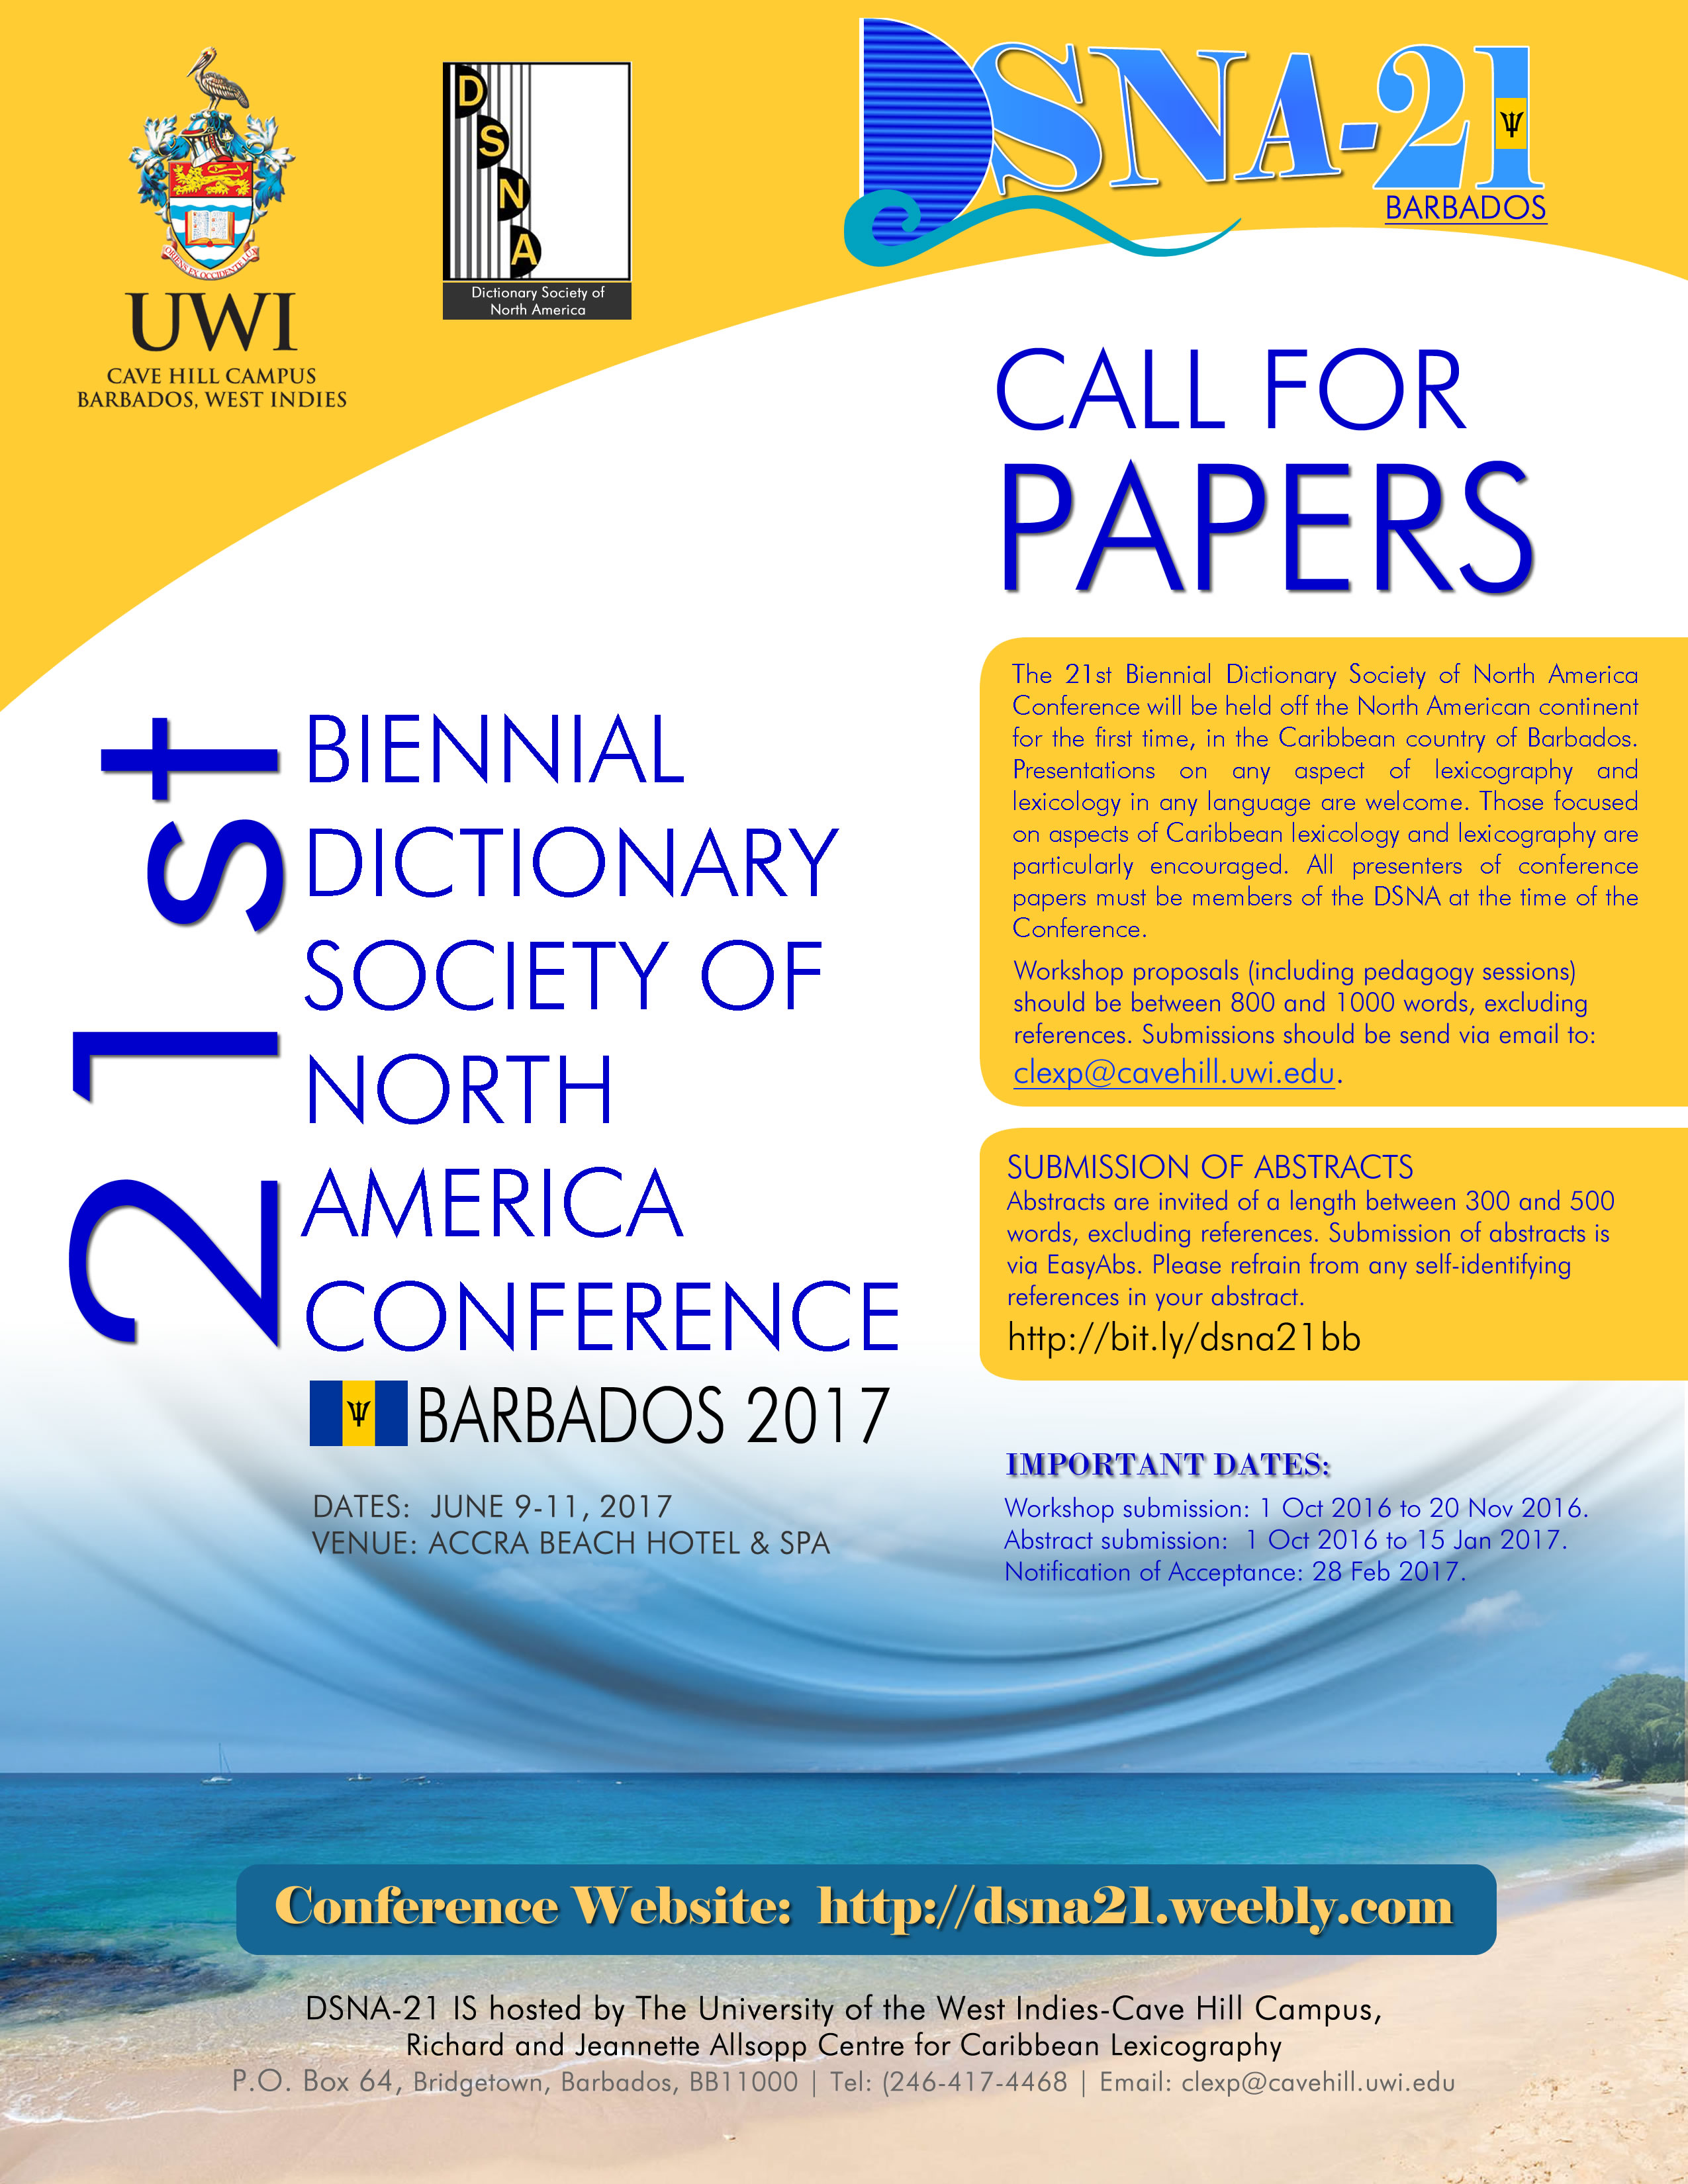 Please help us share the Conference Flyer.